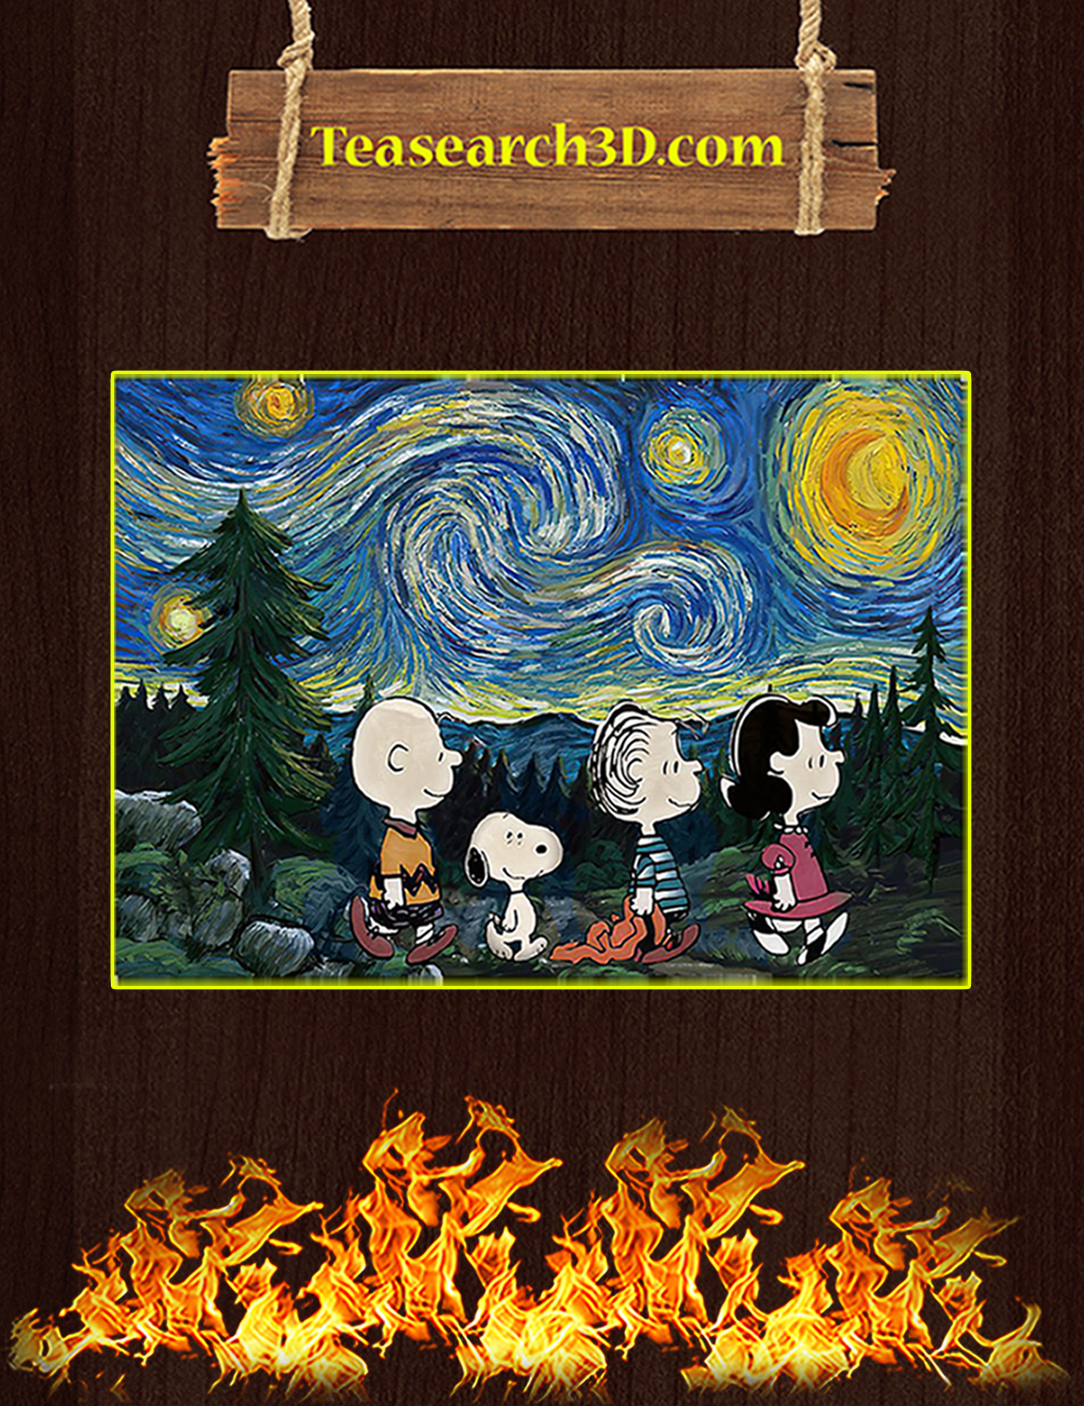 Peanuts starry night poster A2